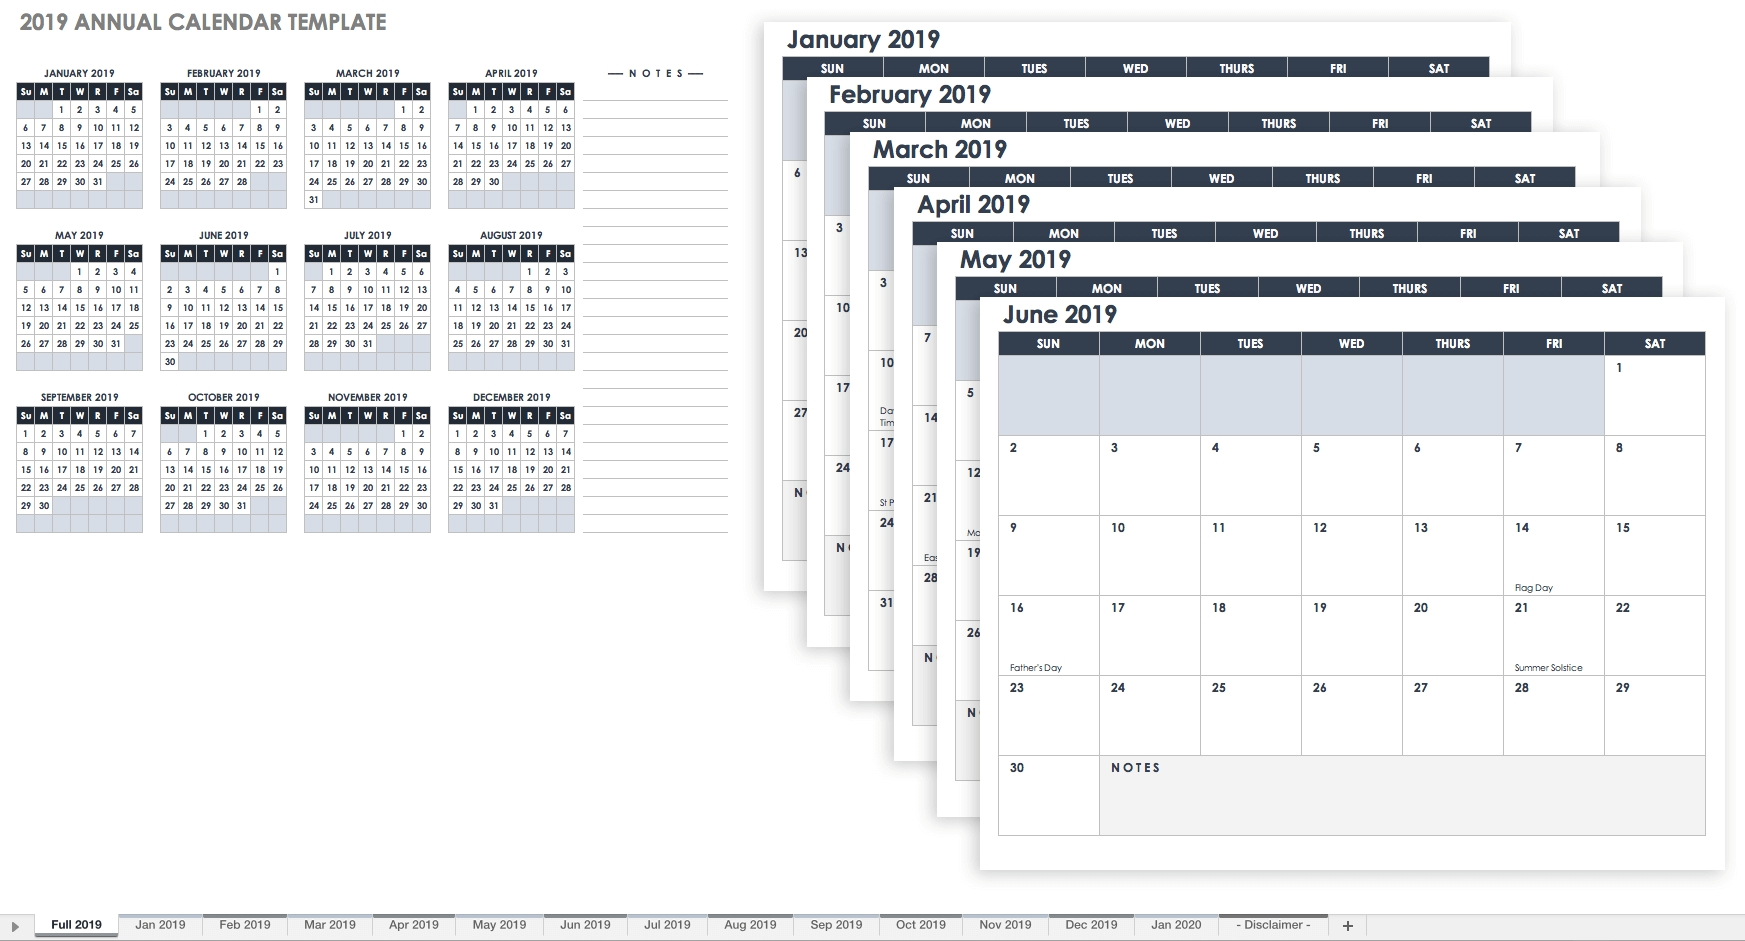 15 Free Monthly Calendar Templates | Smartsheet with regard to 12 Month Blank Calendar Template